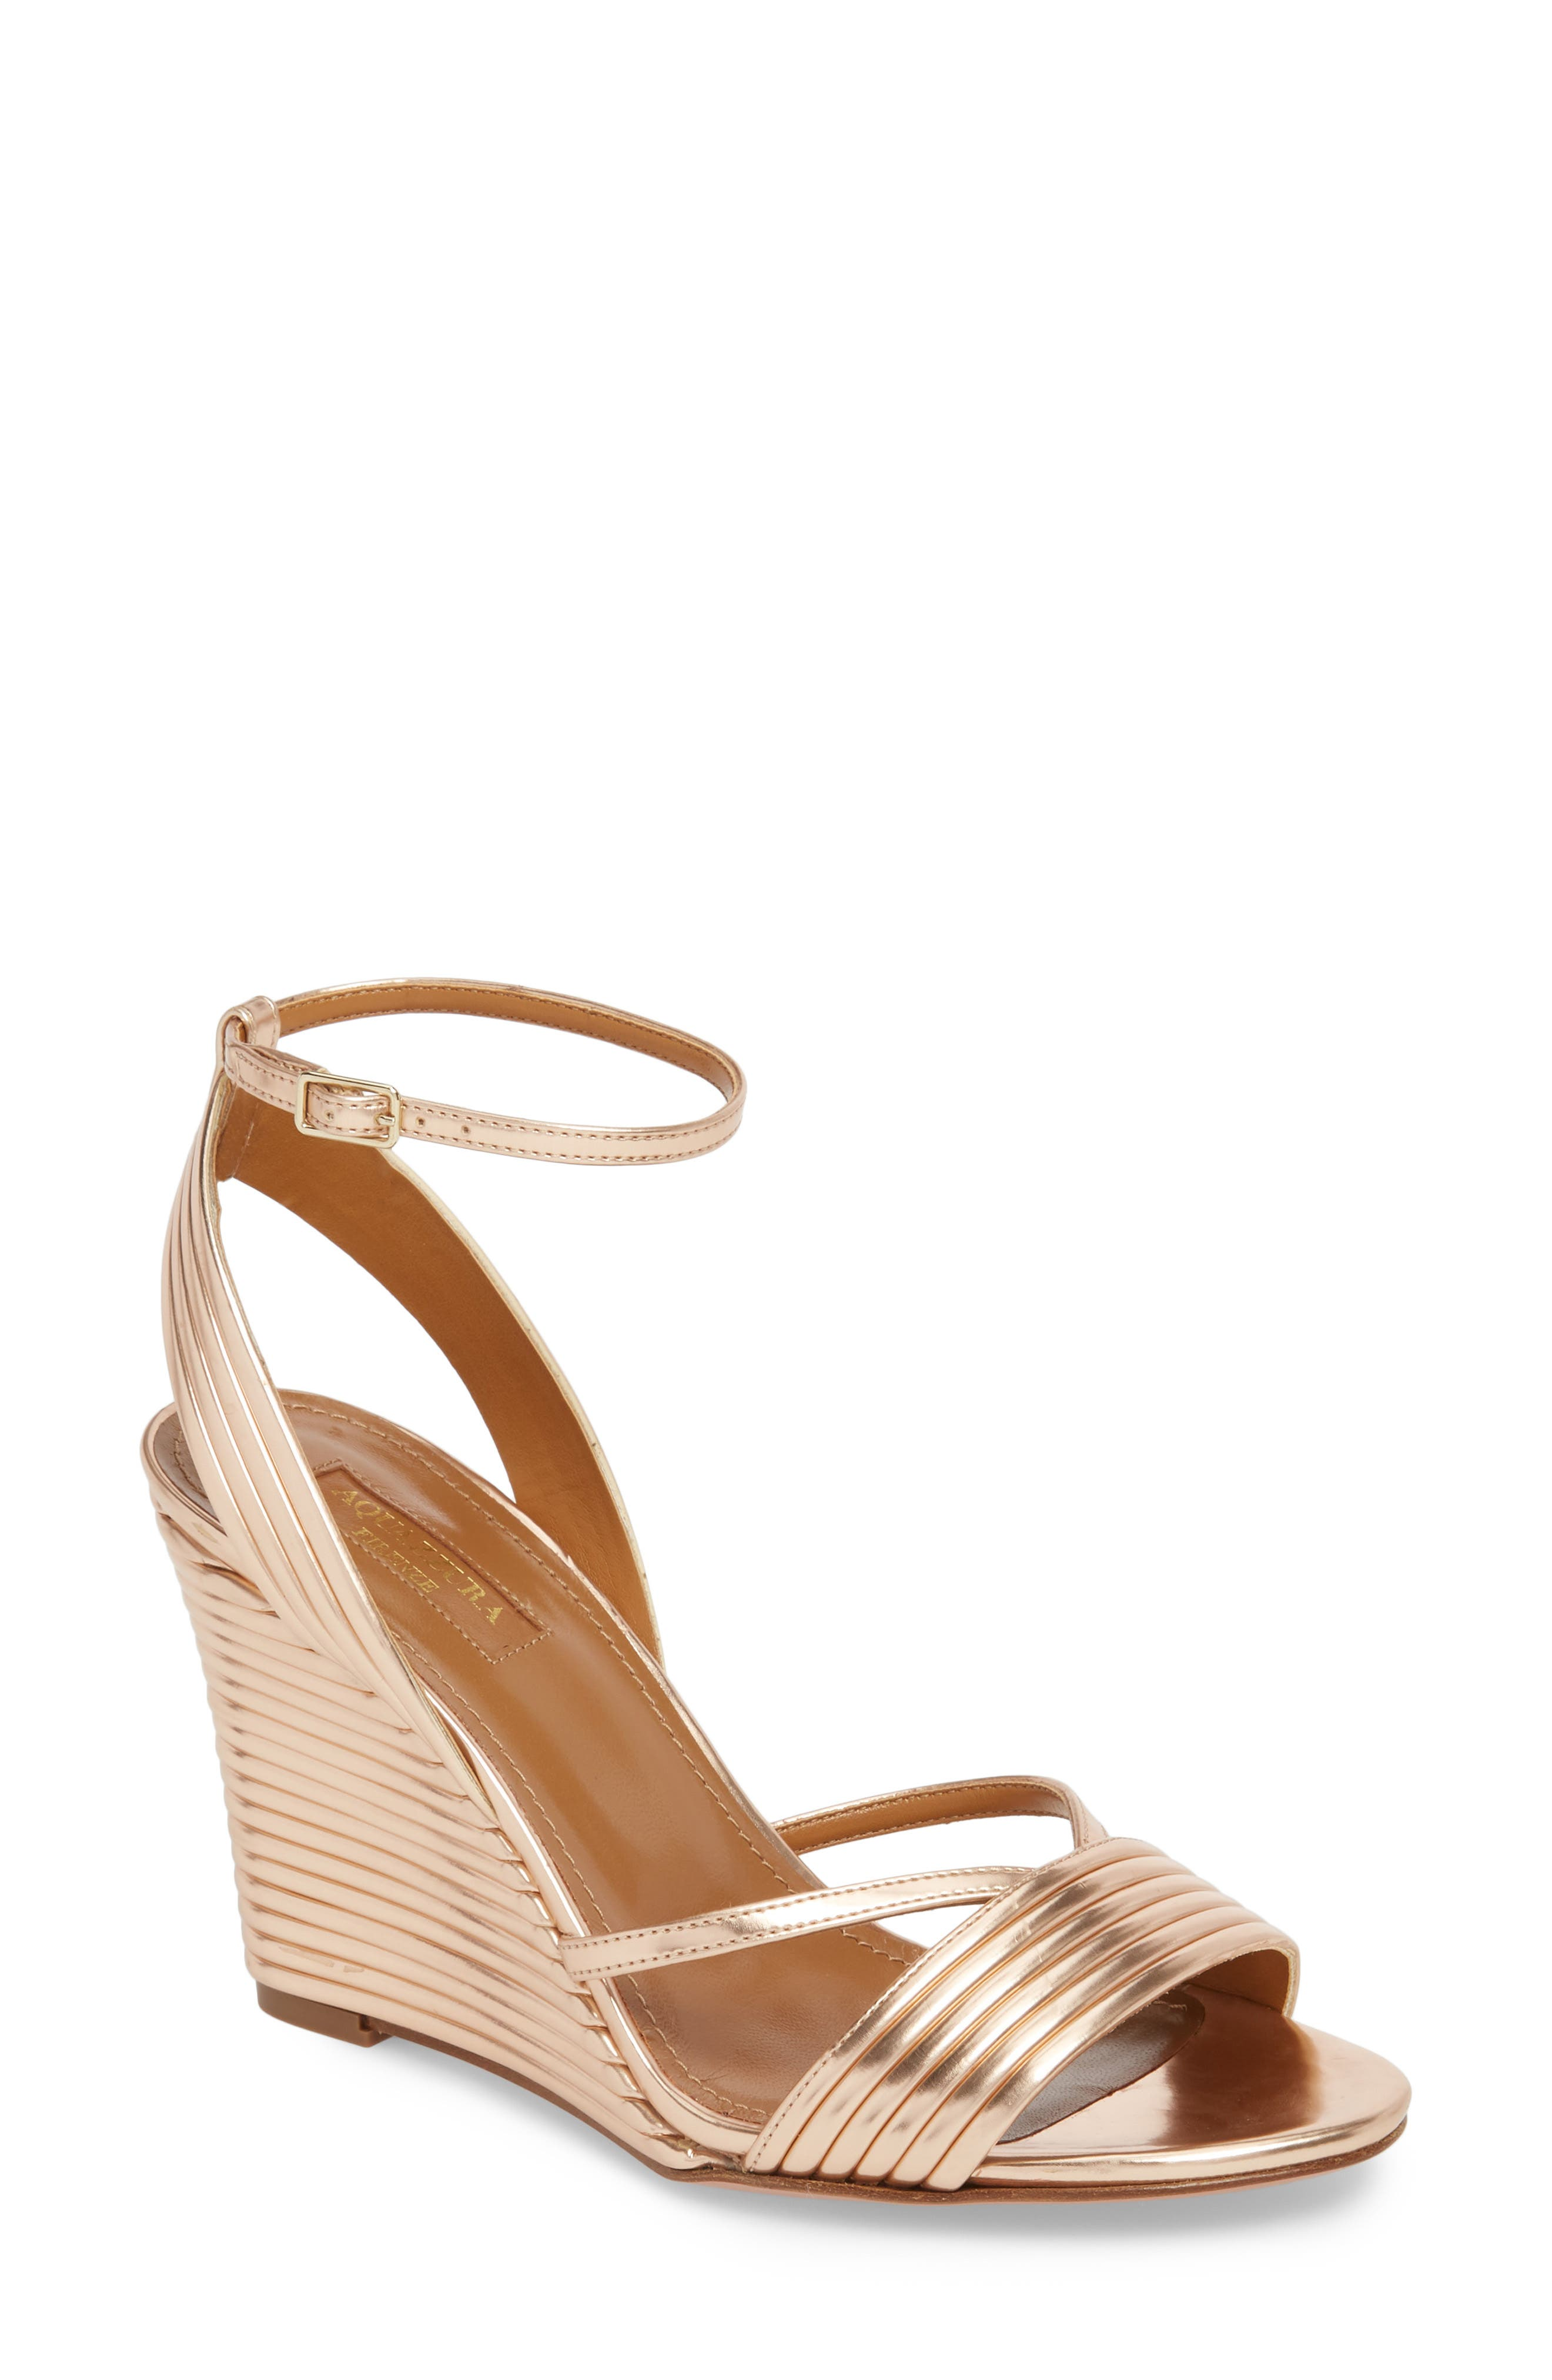 Aquazzura Sundance Wedge Sandal (Women)